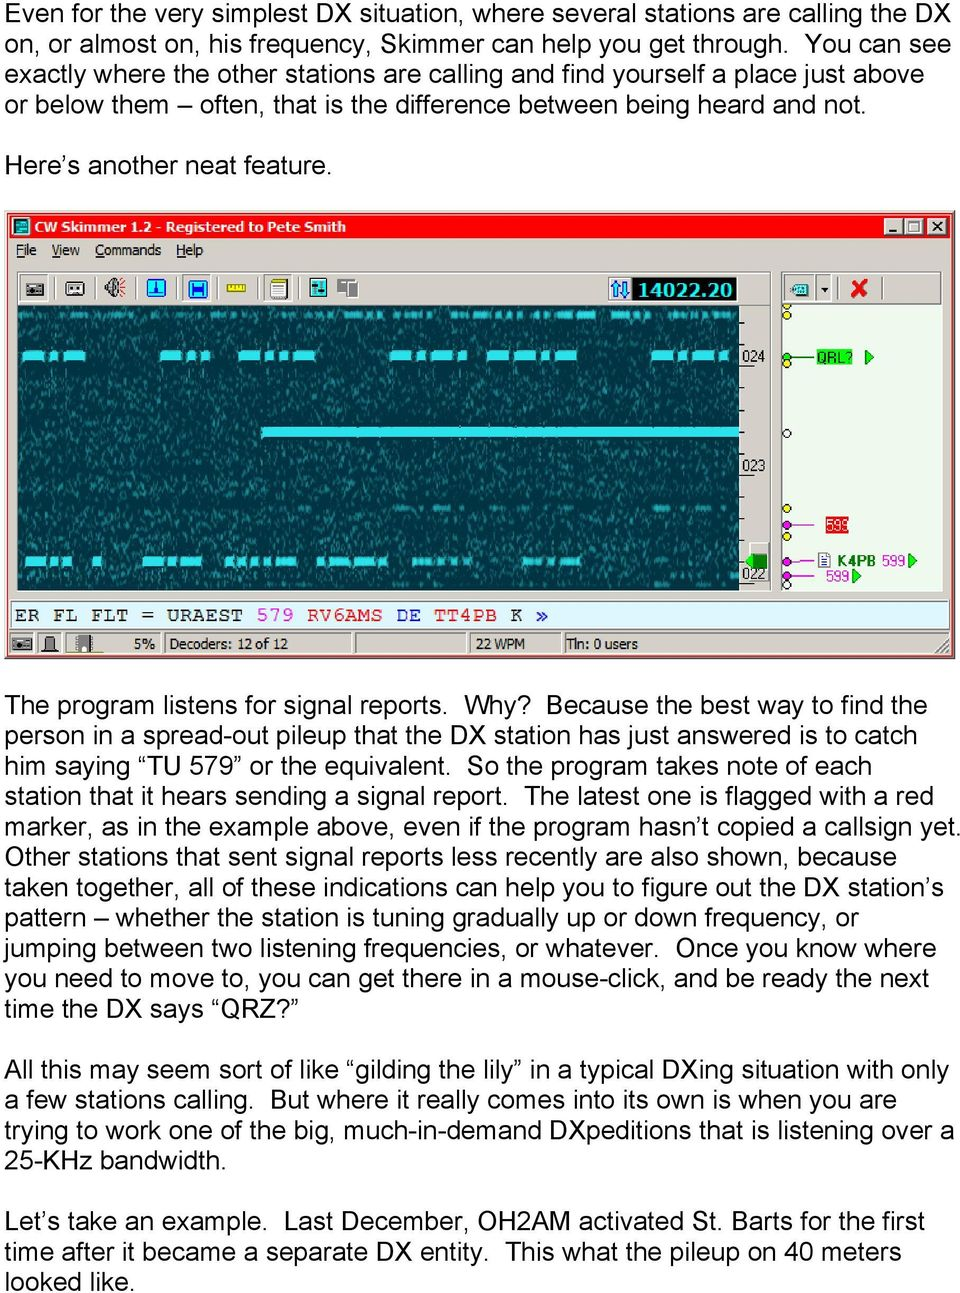 The program listens for signal reports. Why? Because the best way to find the person in a spread-out pileup that the DX station has just answered is to catch him saying TU 579 or the equivalent.